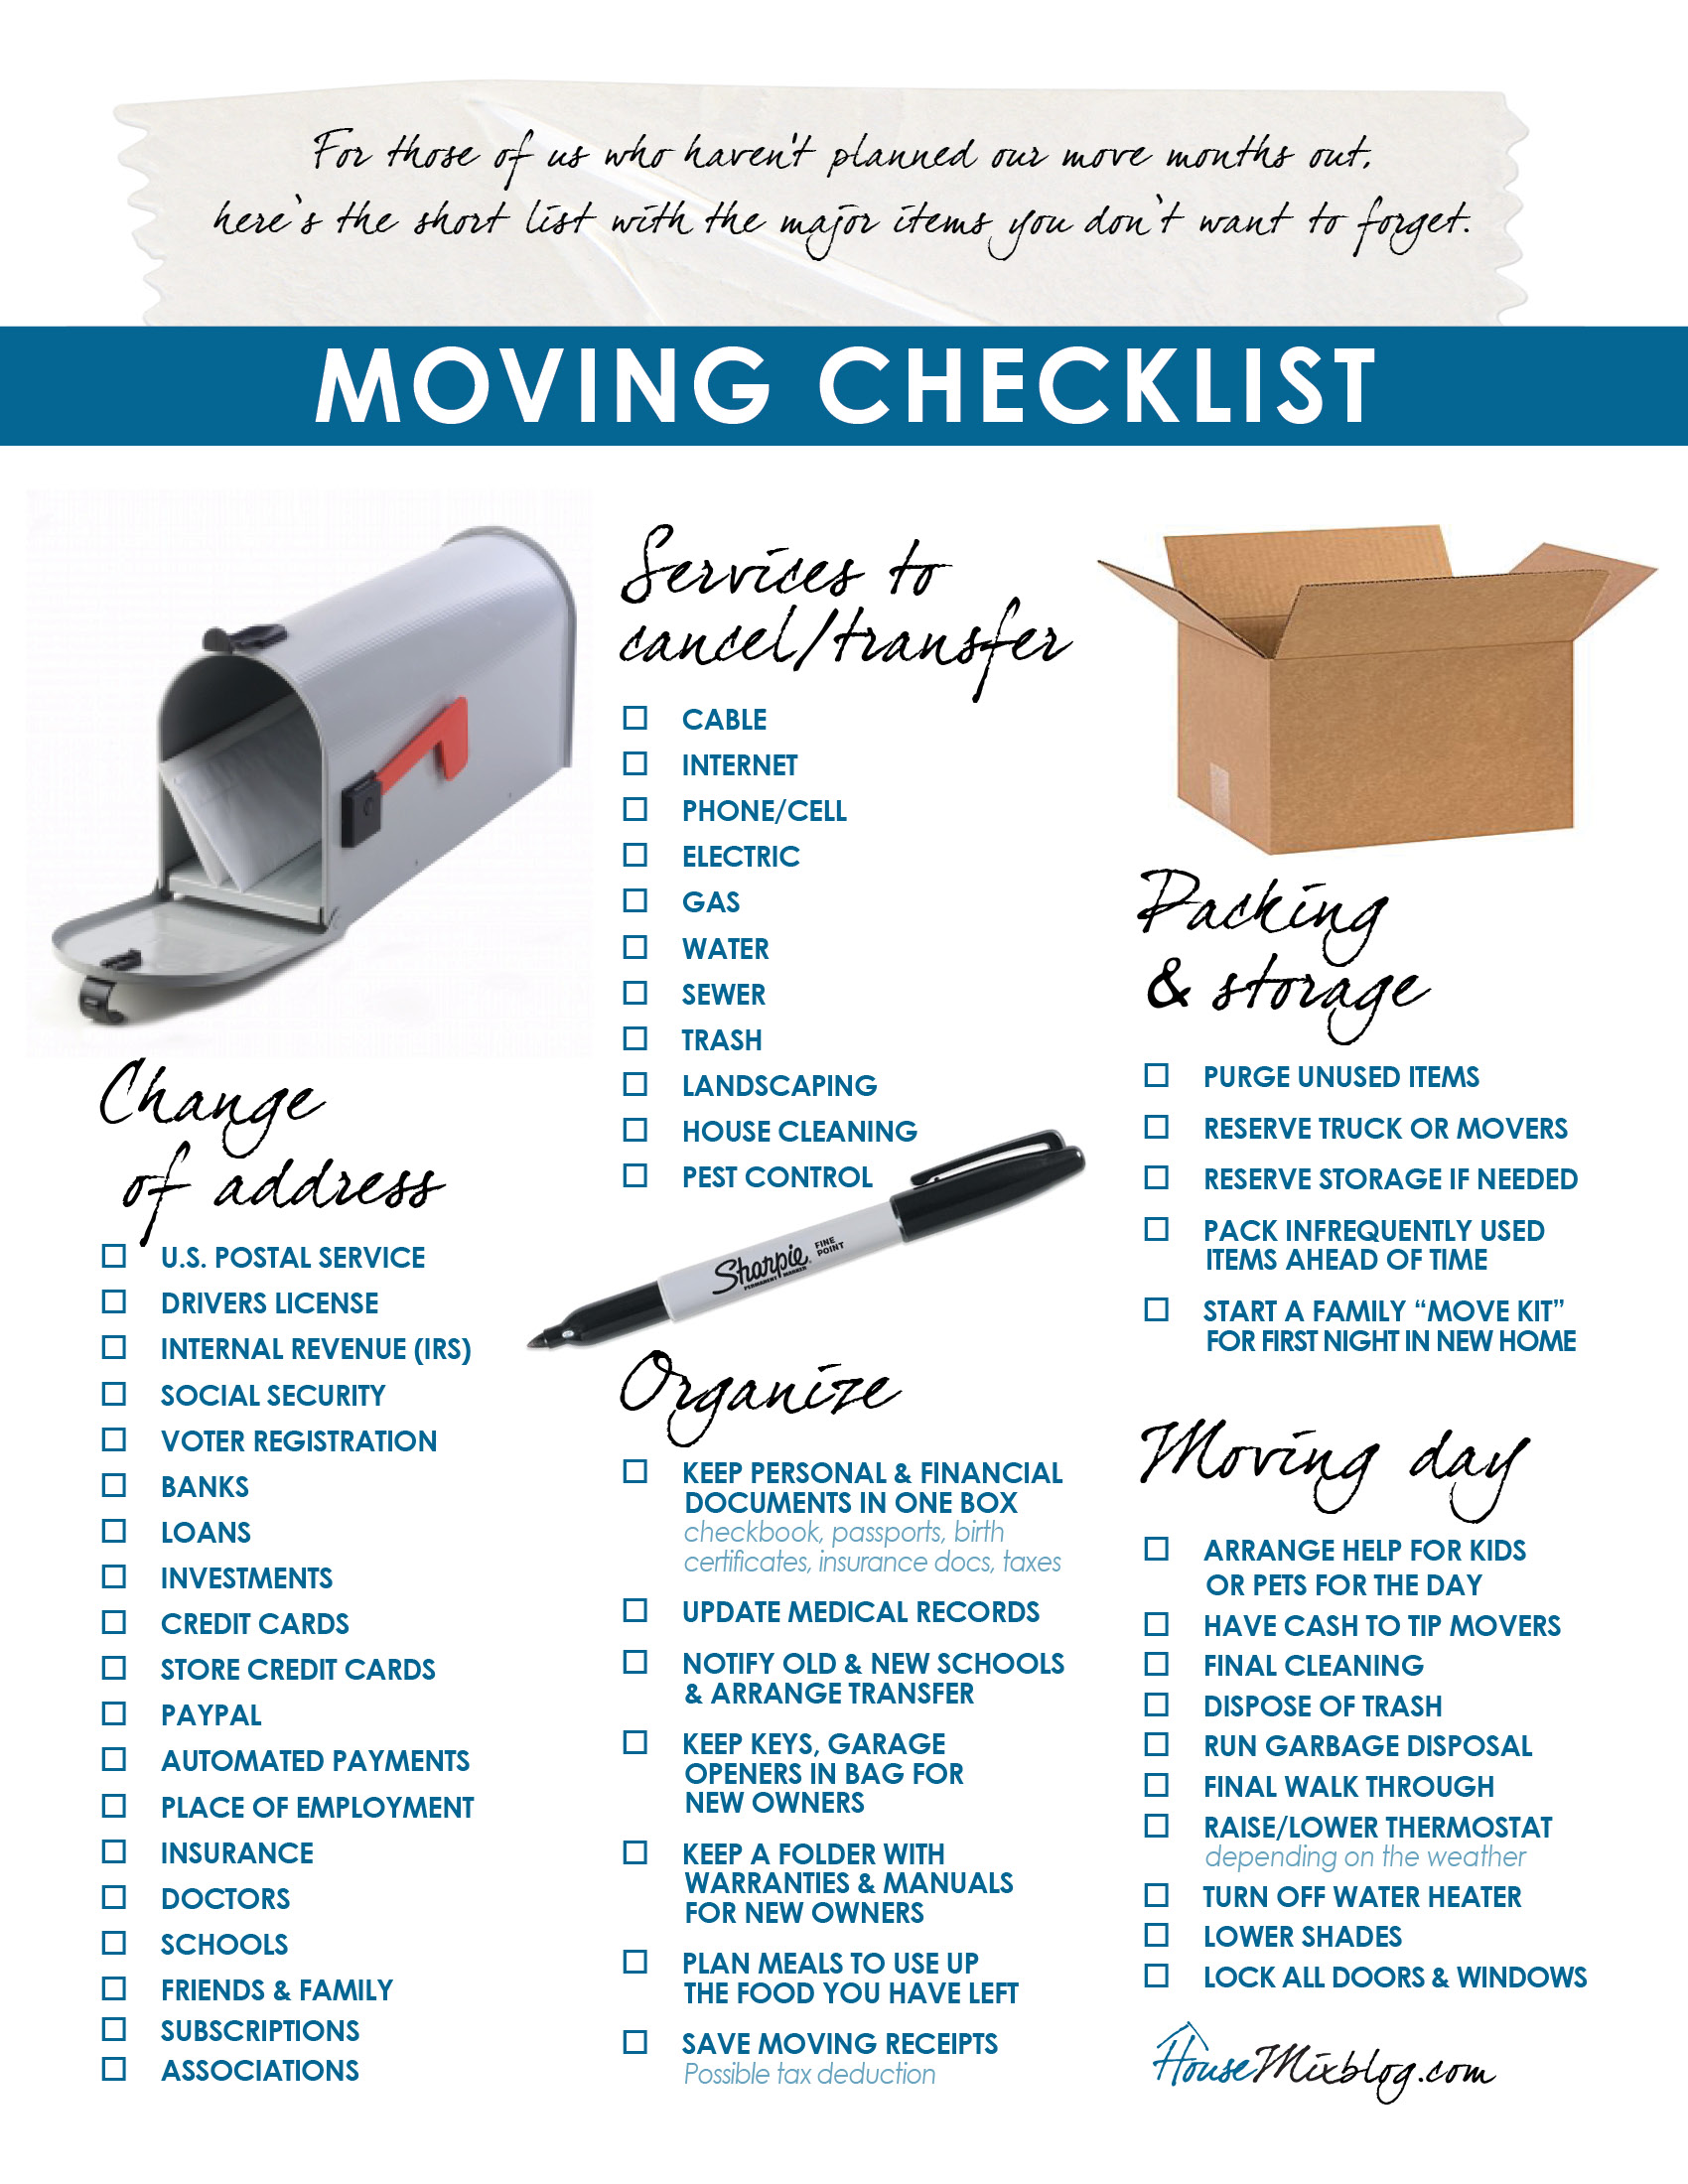 moving part 2 change of address services to stop organizing